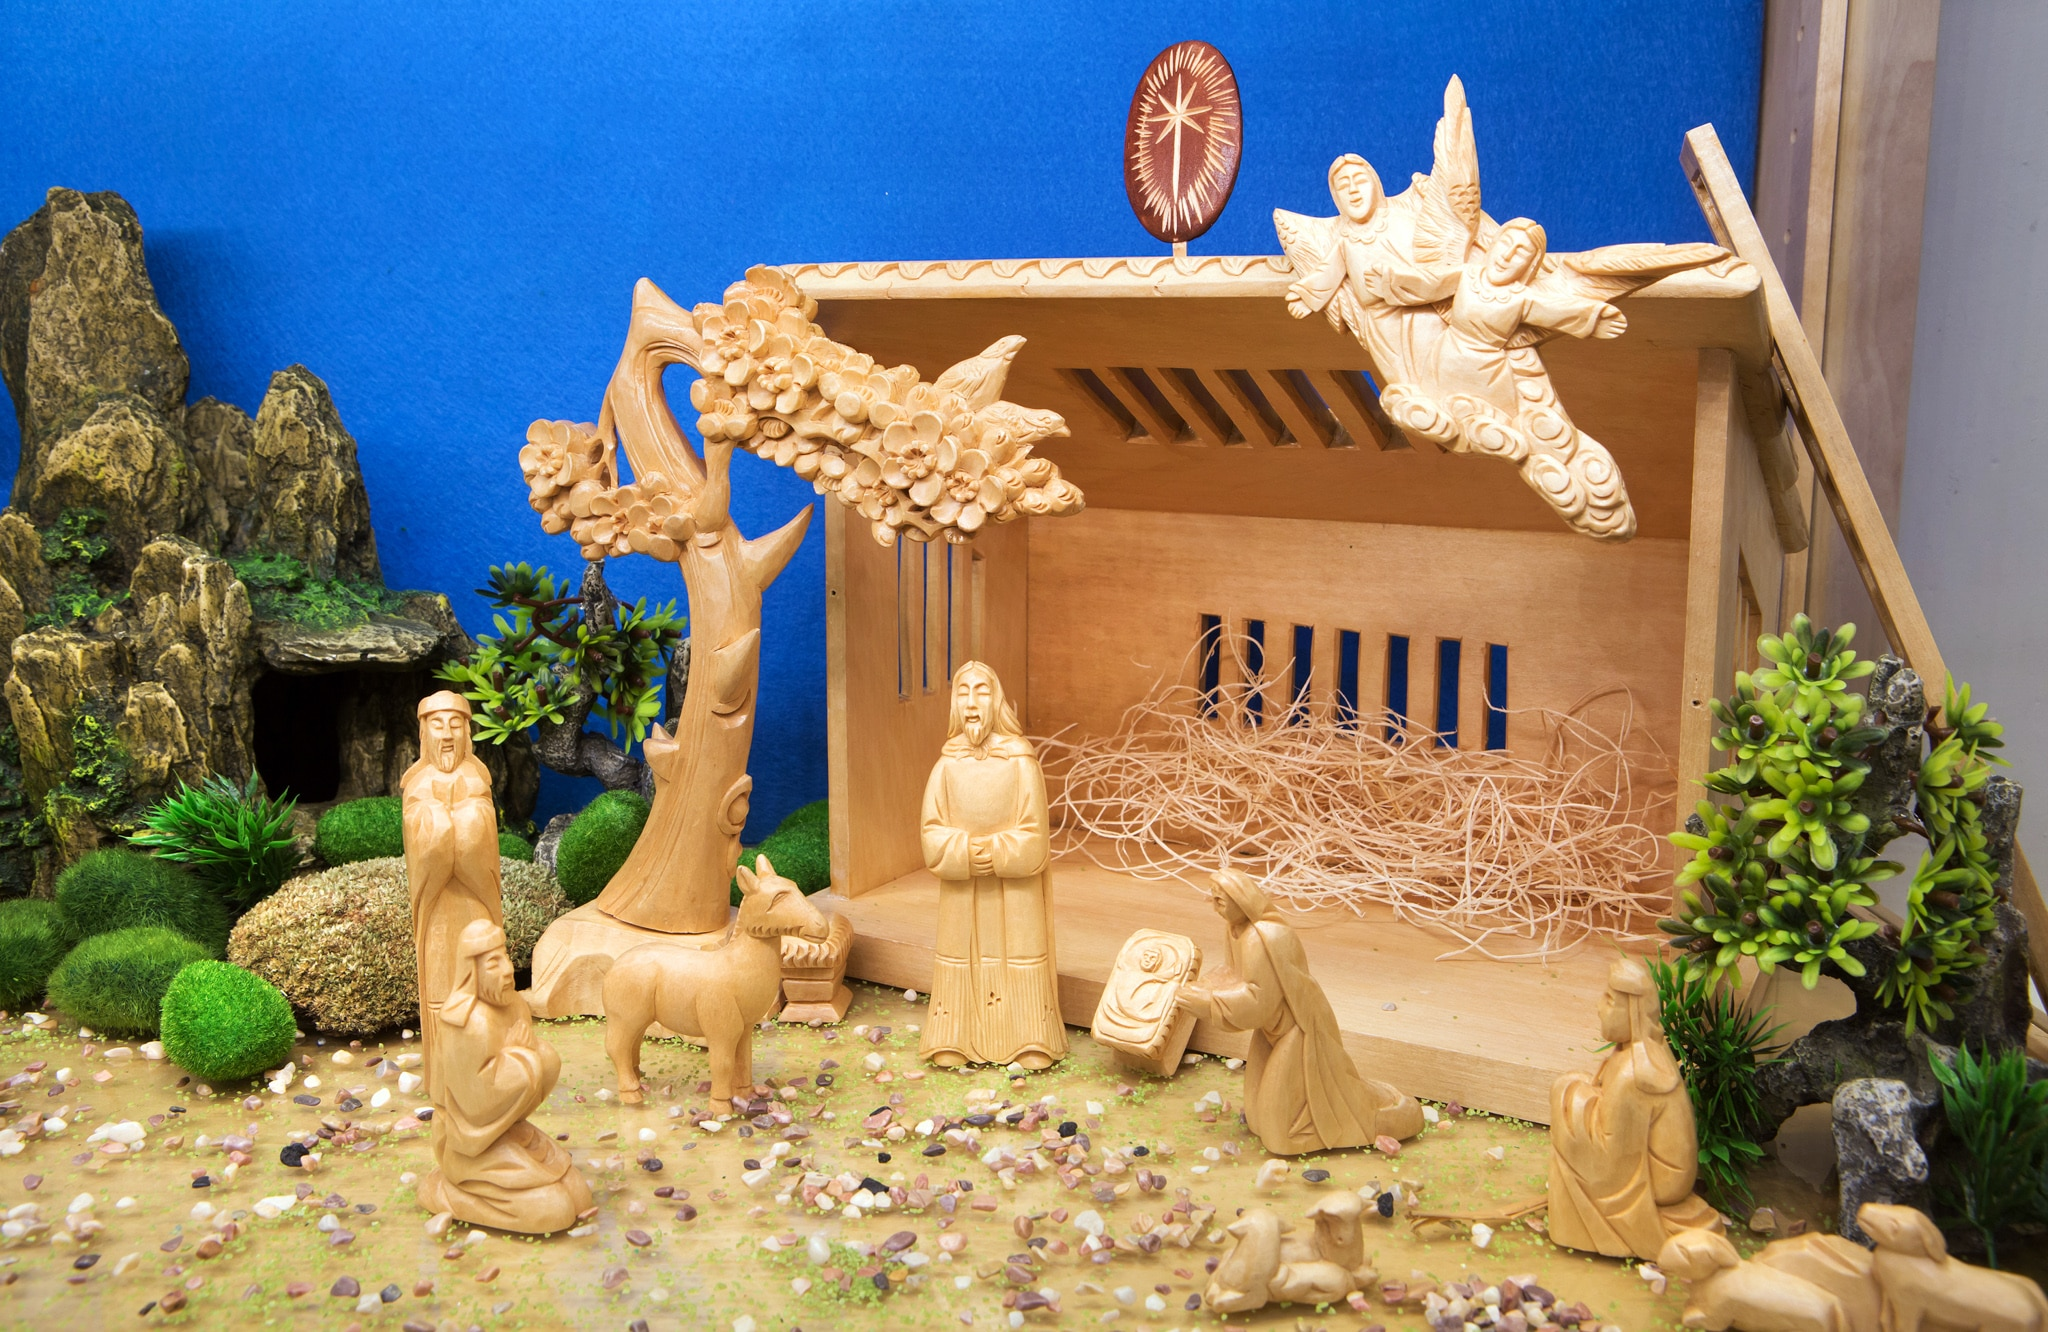 Miniature crèche display with Asian figures (D.A. Peterson/State Dept.)